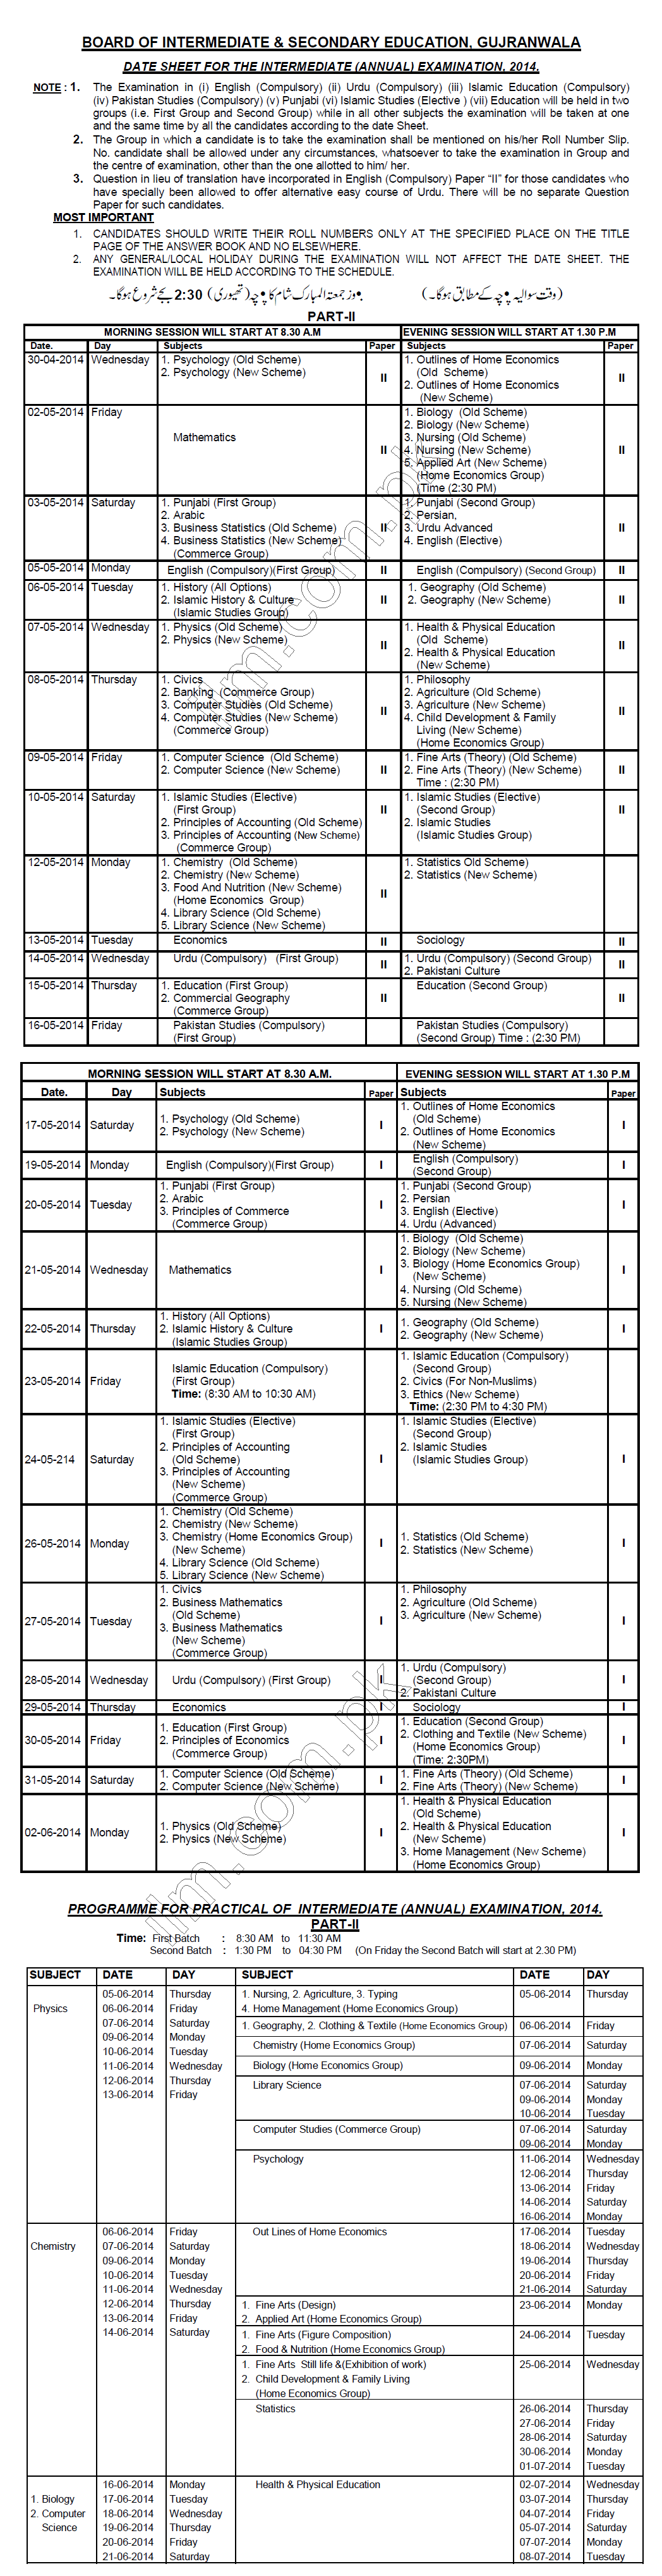 BISE Gujranwala Board Inter Part 1, 2 Date Sheet 2014